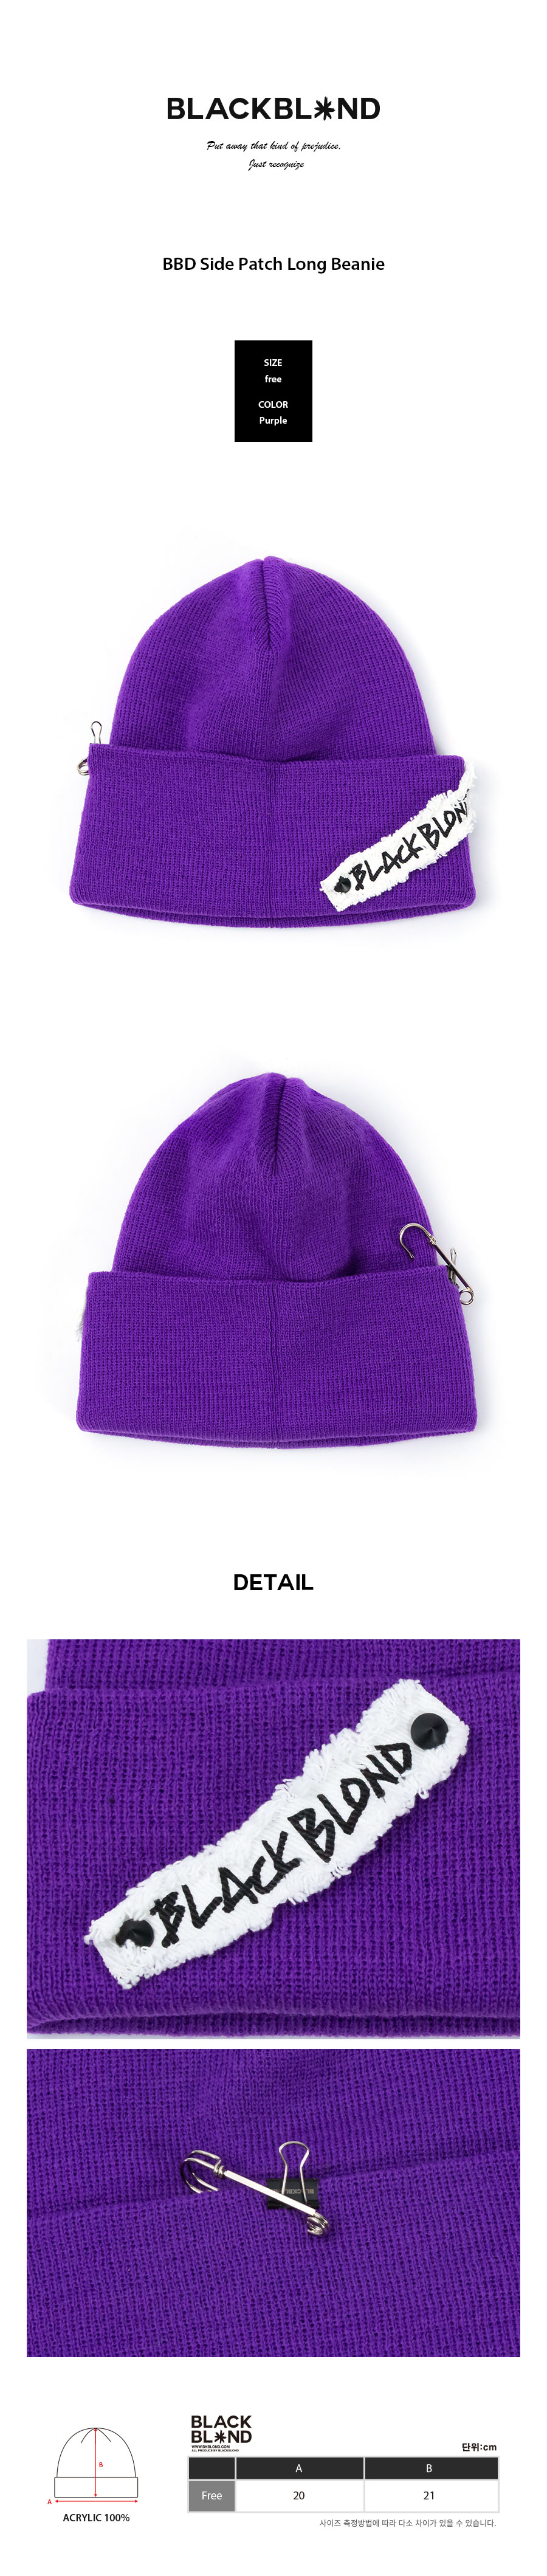 BBD-Side-Patch-Long-Beanie-%28Purple%29.jpg